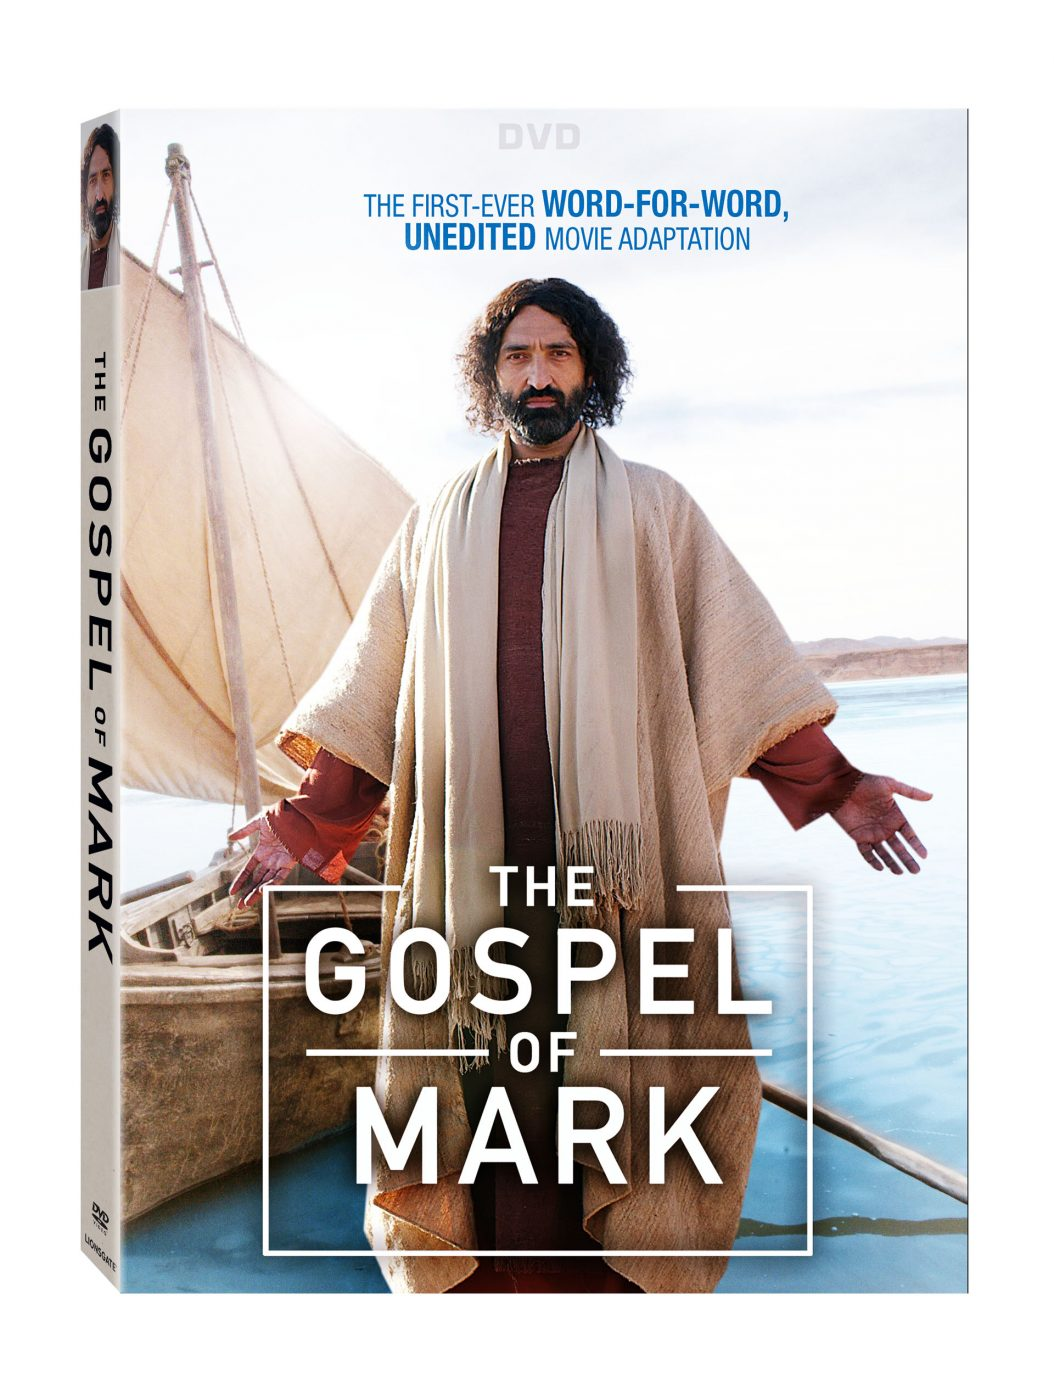 a review of the gospel of mark The gospel according to the apostle mark, is just one of the books summarised in the bible brief study book chapter one introduces us to john the baptist, and the baptism of jesus himself, then goes straight to the wilderness experience after which jesus returns and appoints fishermen simon and andrew as his first followers.